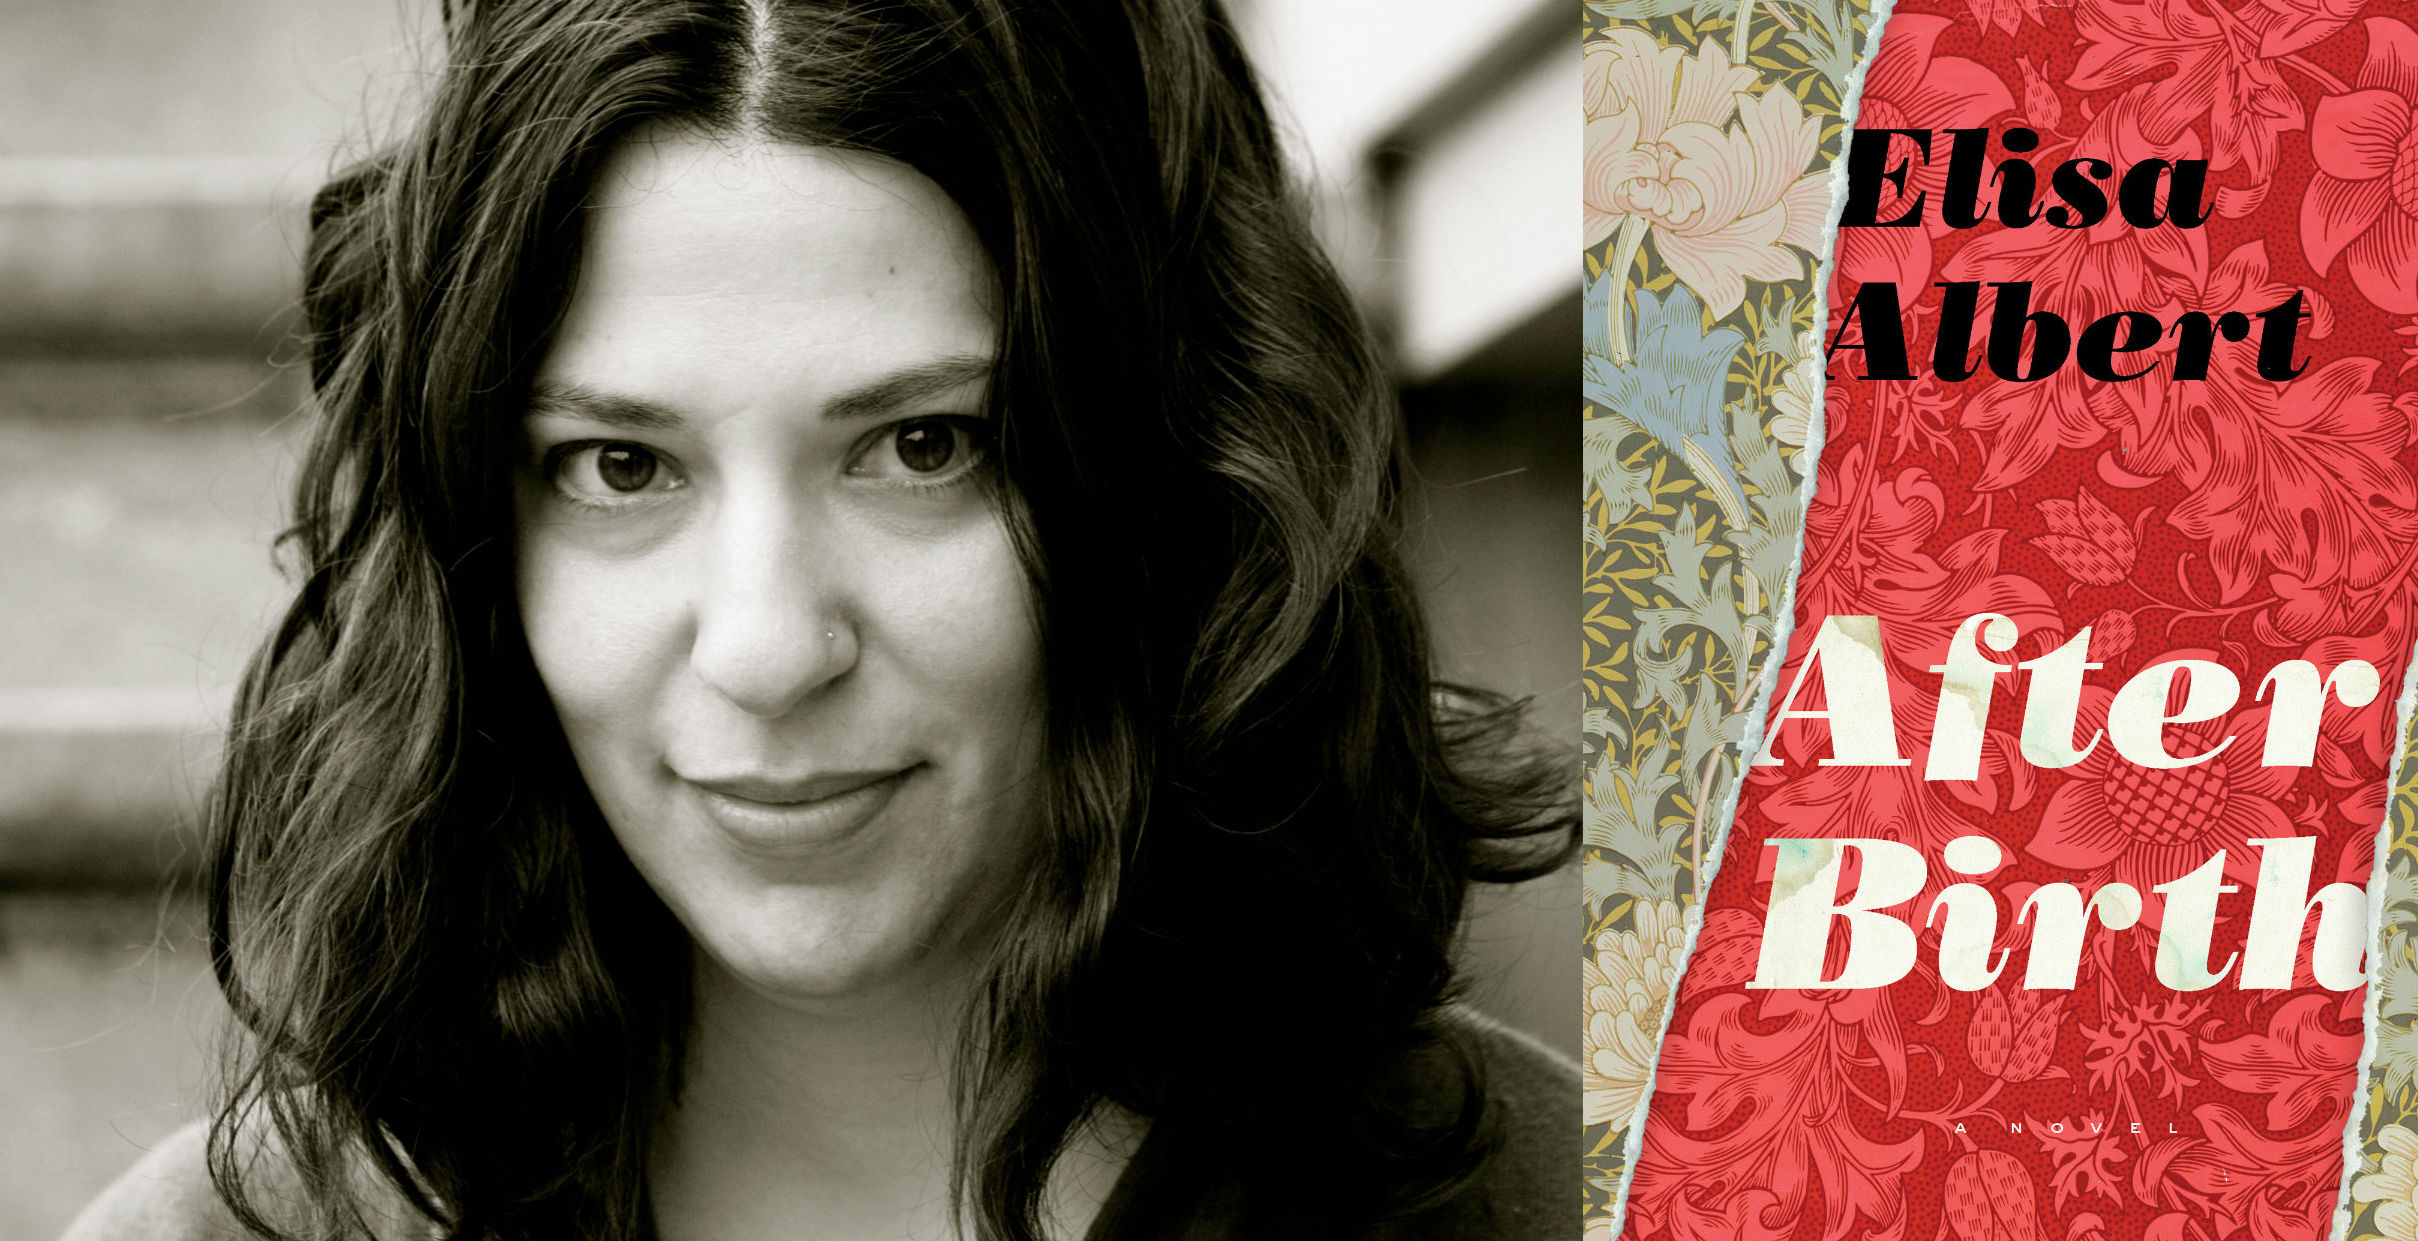 Elisa Albert's 'After Birth' is the book you need to read now